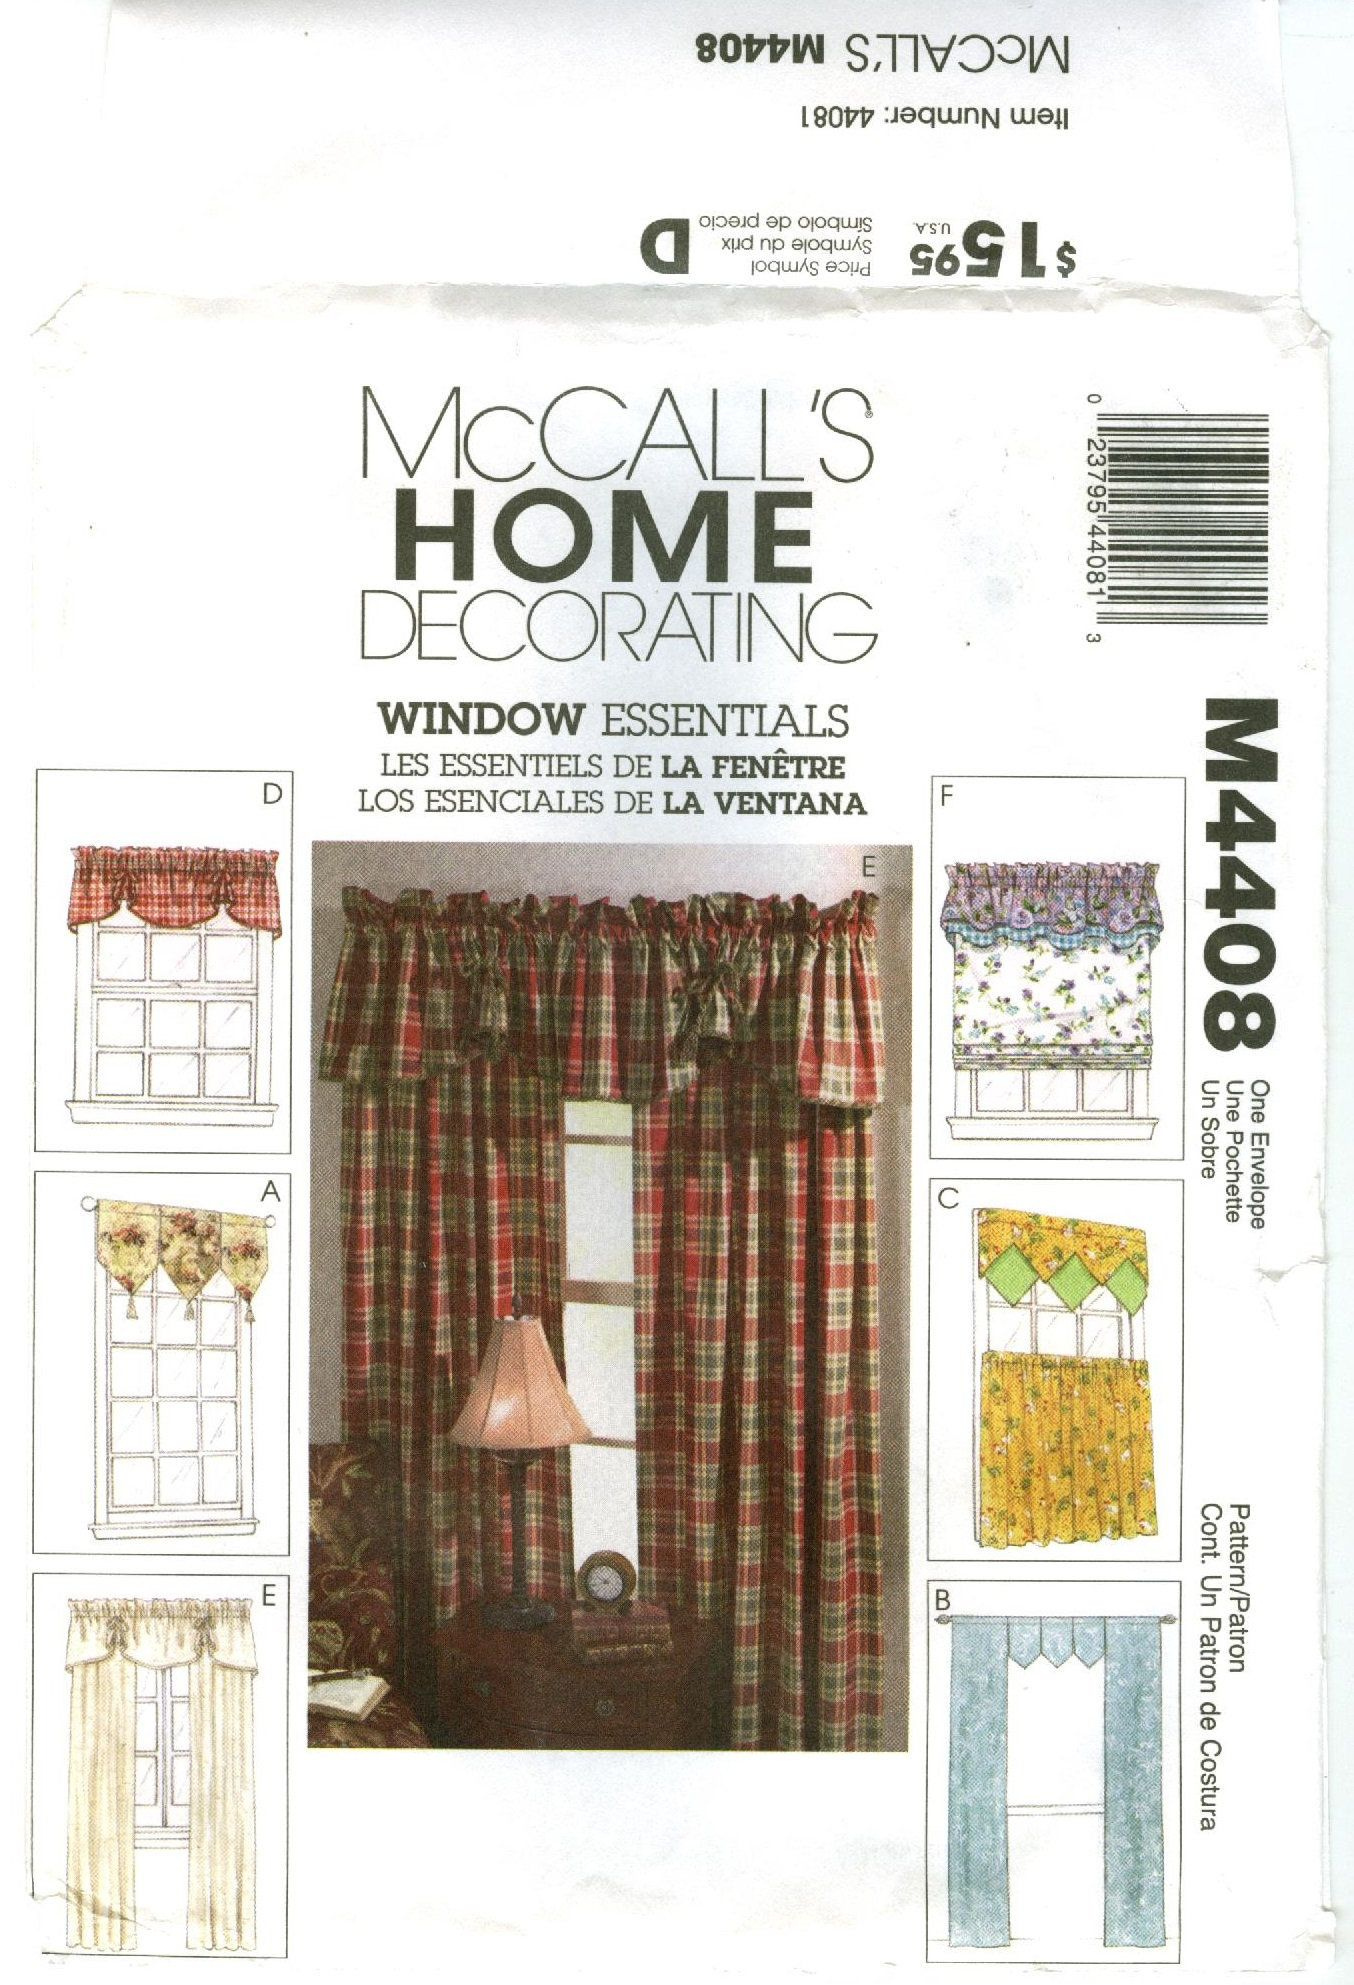 M4408 Mccall S Home Decorating Window Essentials 6 Window Treatments Valances Panels Cafe Curtains Uncut Sewing Pattern Window Treatments Cafe Curtains Home Decor